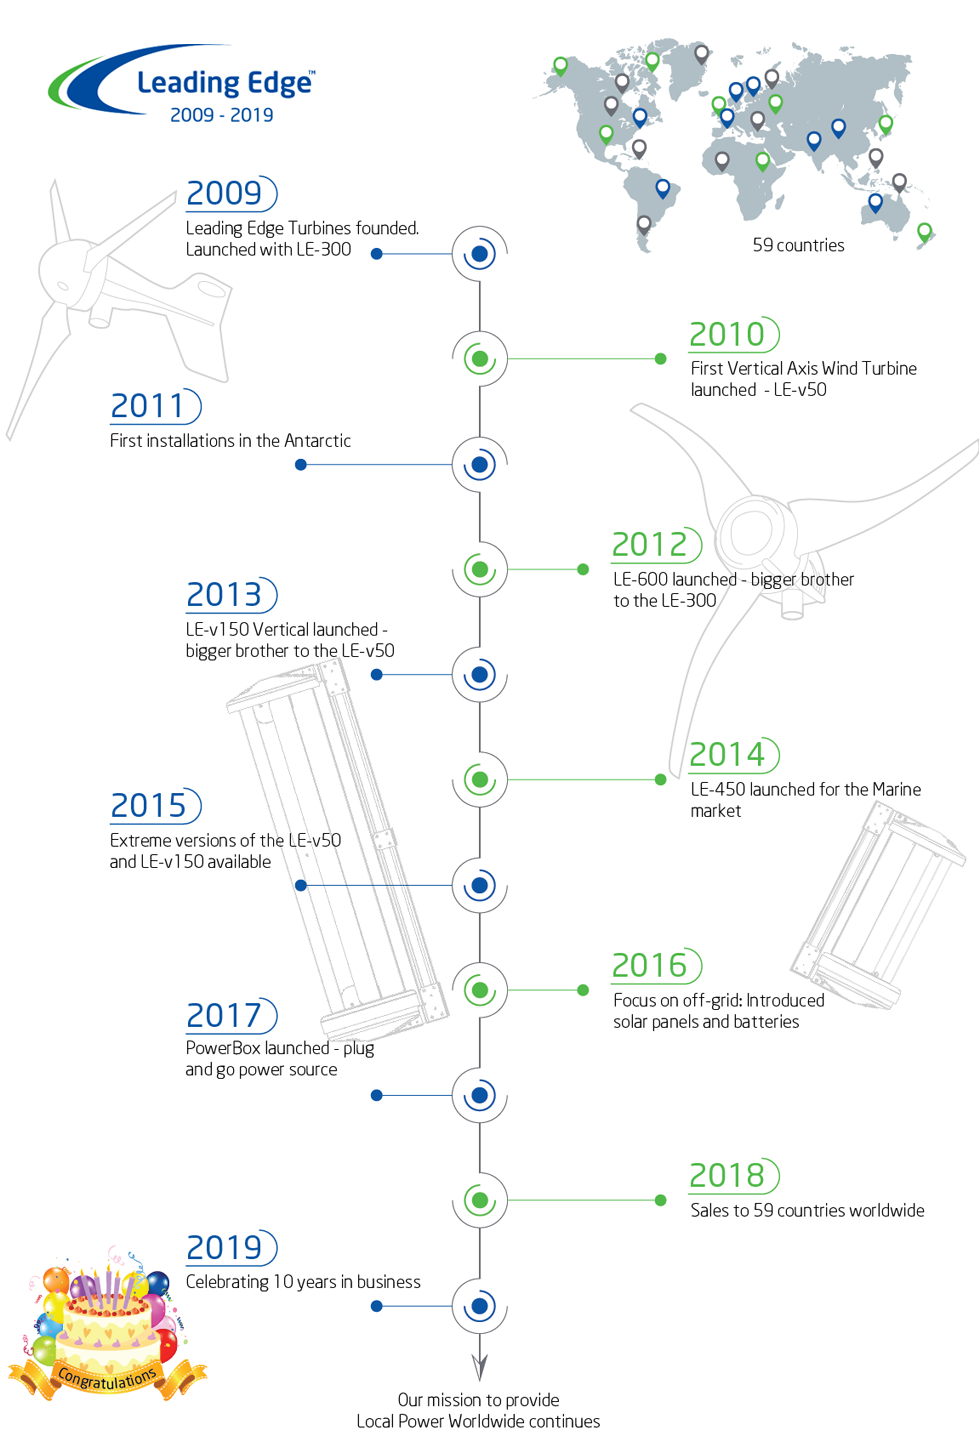 Leading Edge offgrid power timeline